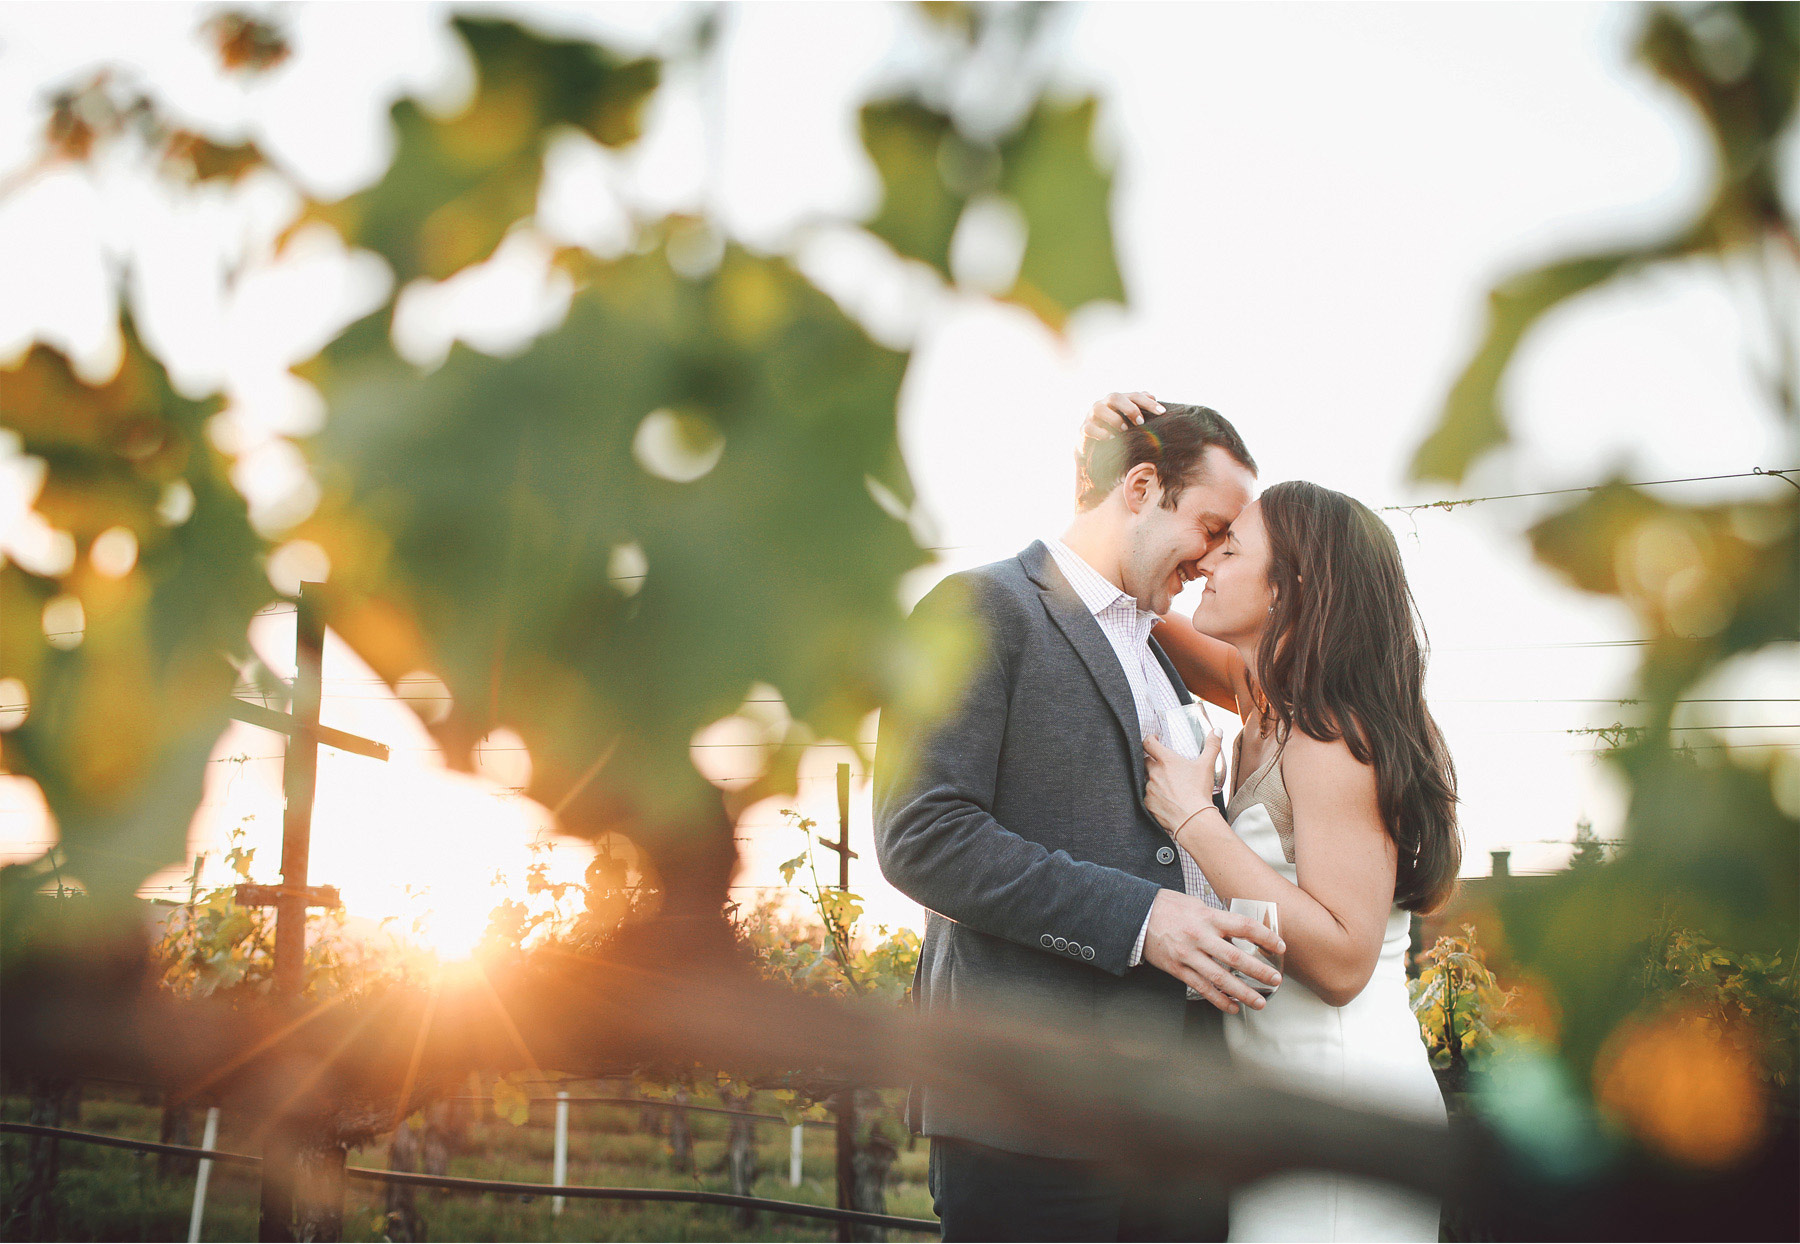 03-Napa-California-Wedding-Photographer-by-Andrew-Vick-Photography-Spring-Destination-Paraduxx-Winery-Vinyard-Rehearsal-Bride-Groom-Wine-Embrace-Sunset-Vintage-Alex-and-Roger.jpg